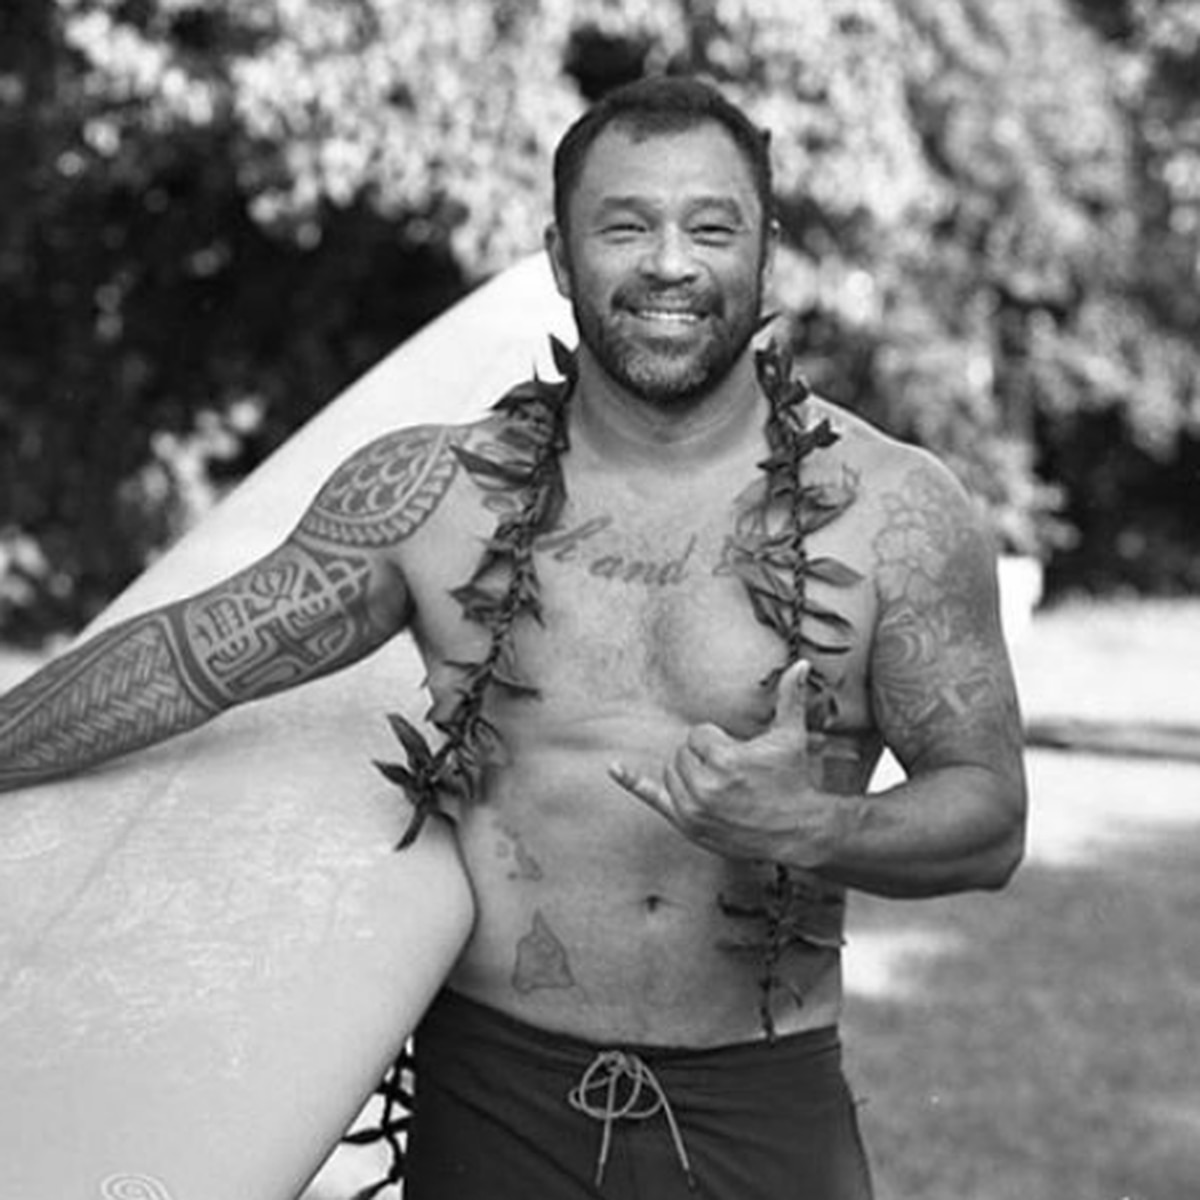 Sunny Garcia undergoes surgery, remains in intensive care